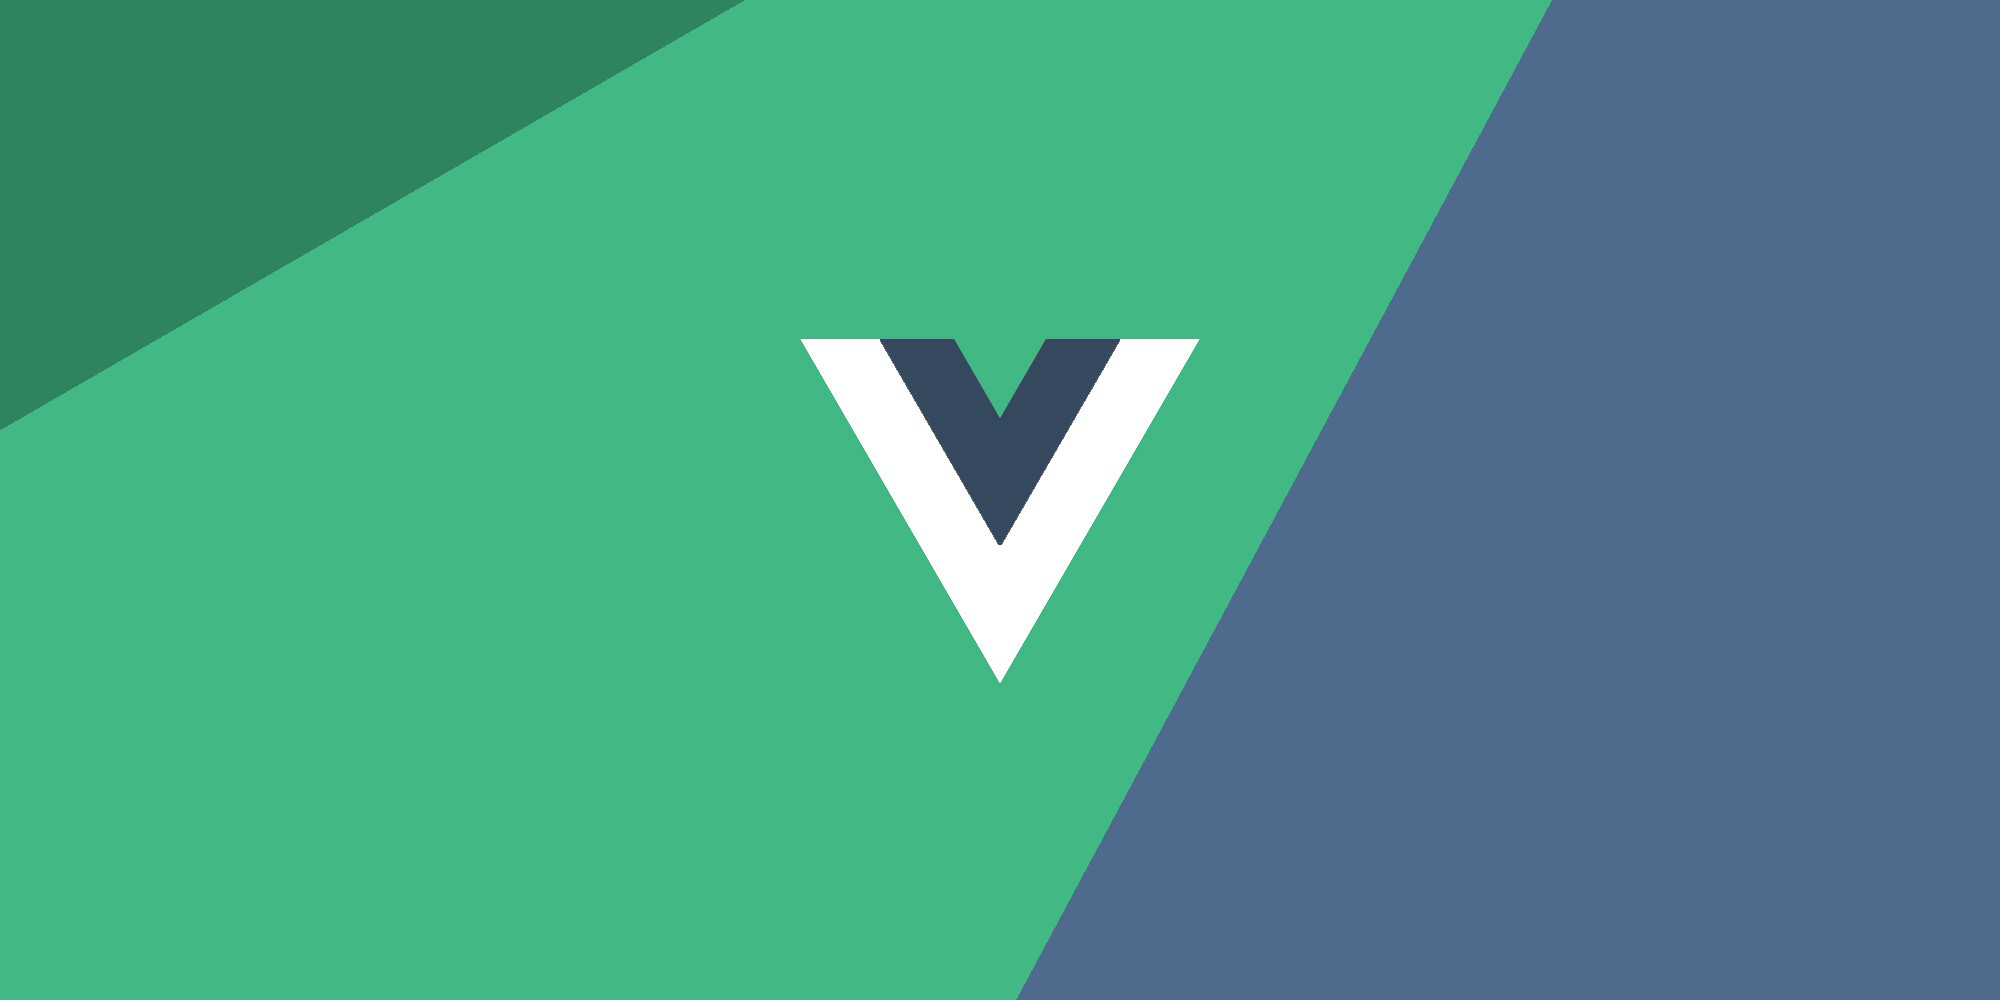 /how-to-integrate-vue-js-typescript-with-asp-net-core-web-application-6e9aa6f2bcef feature image